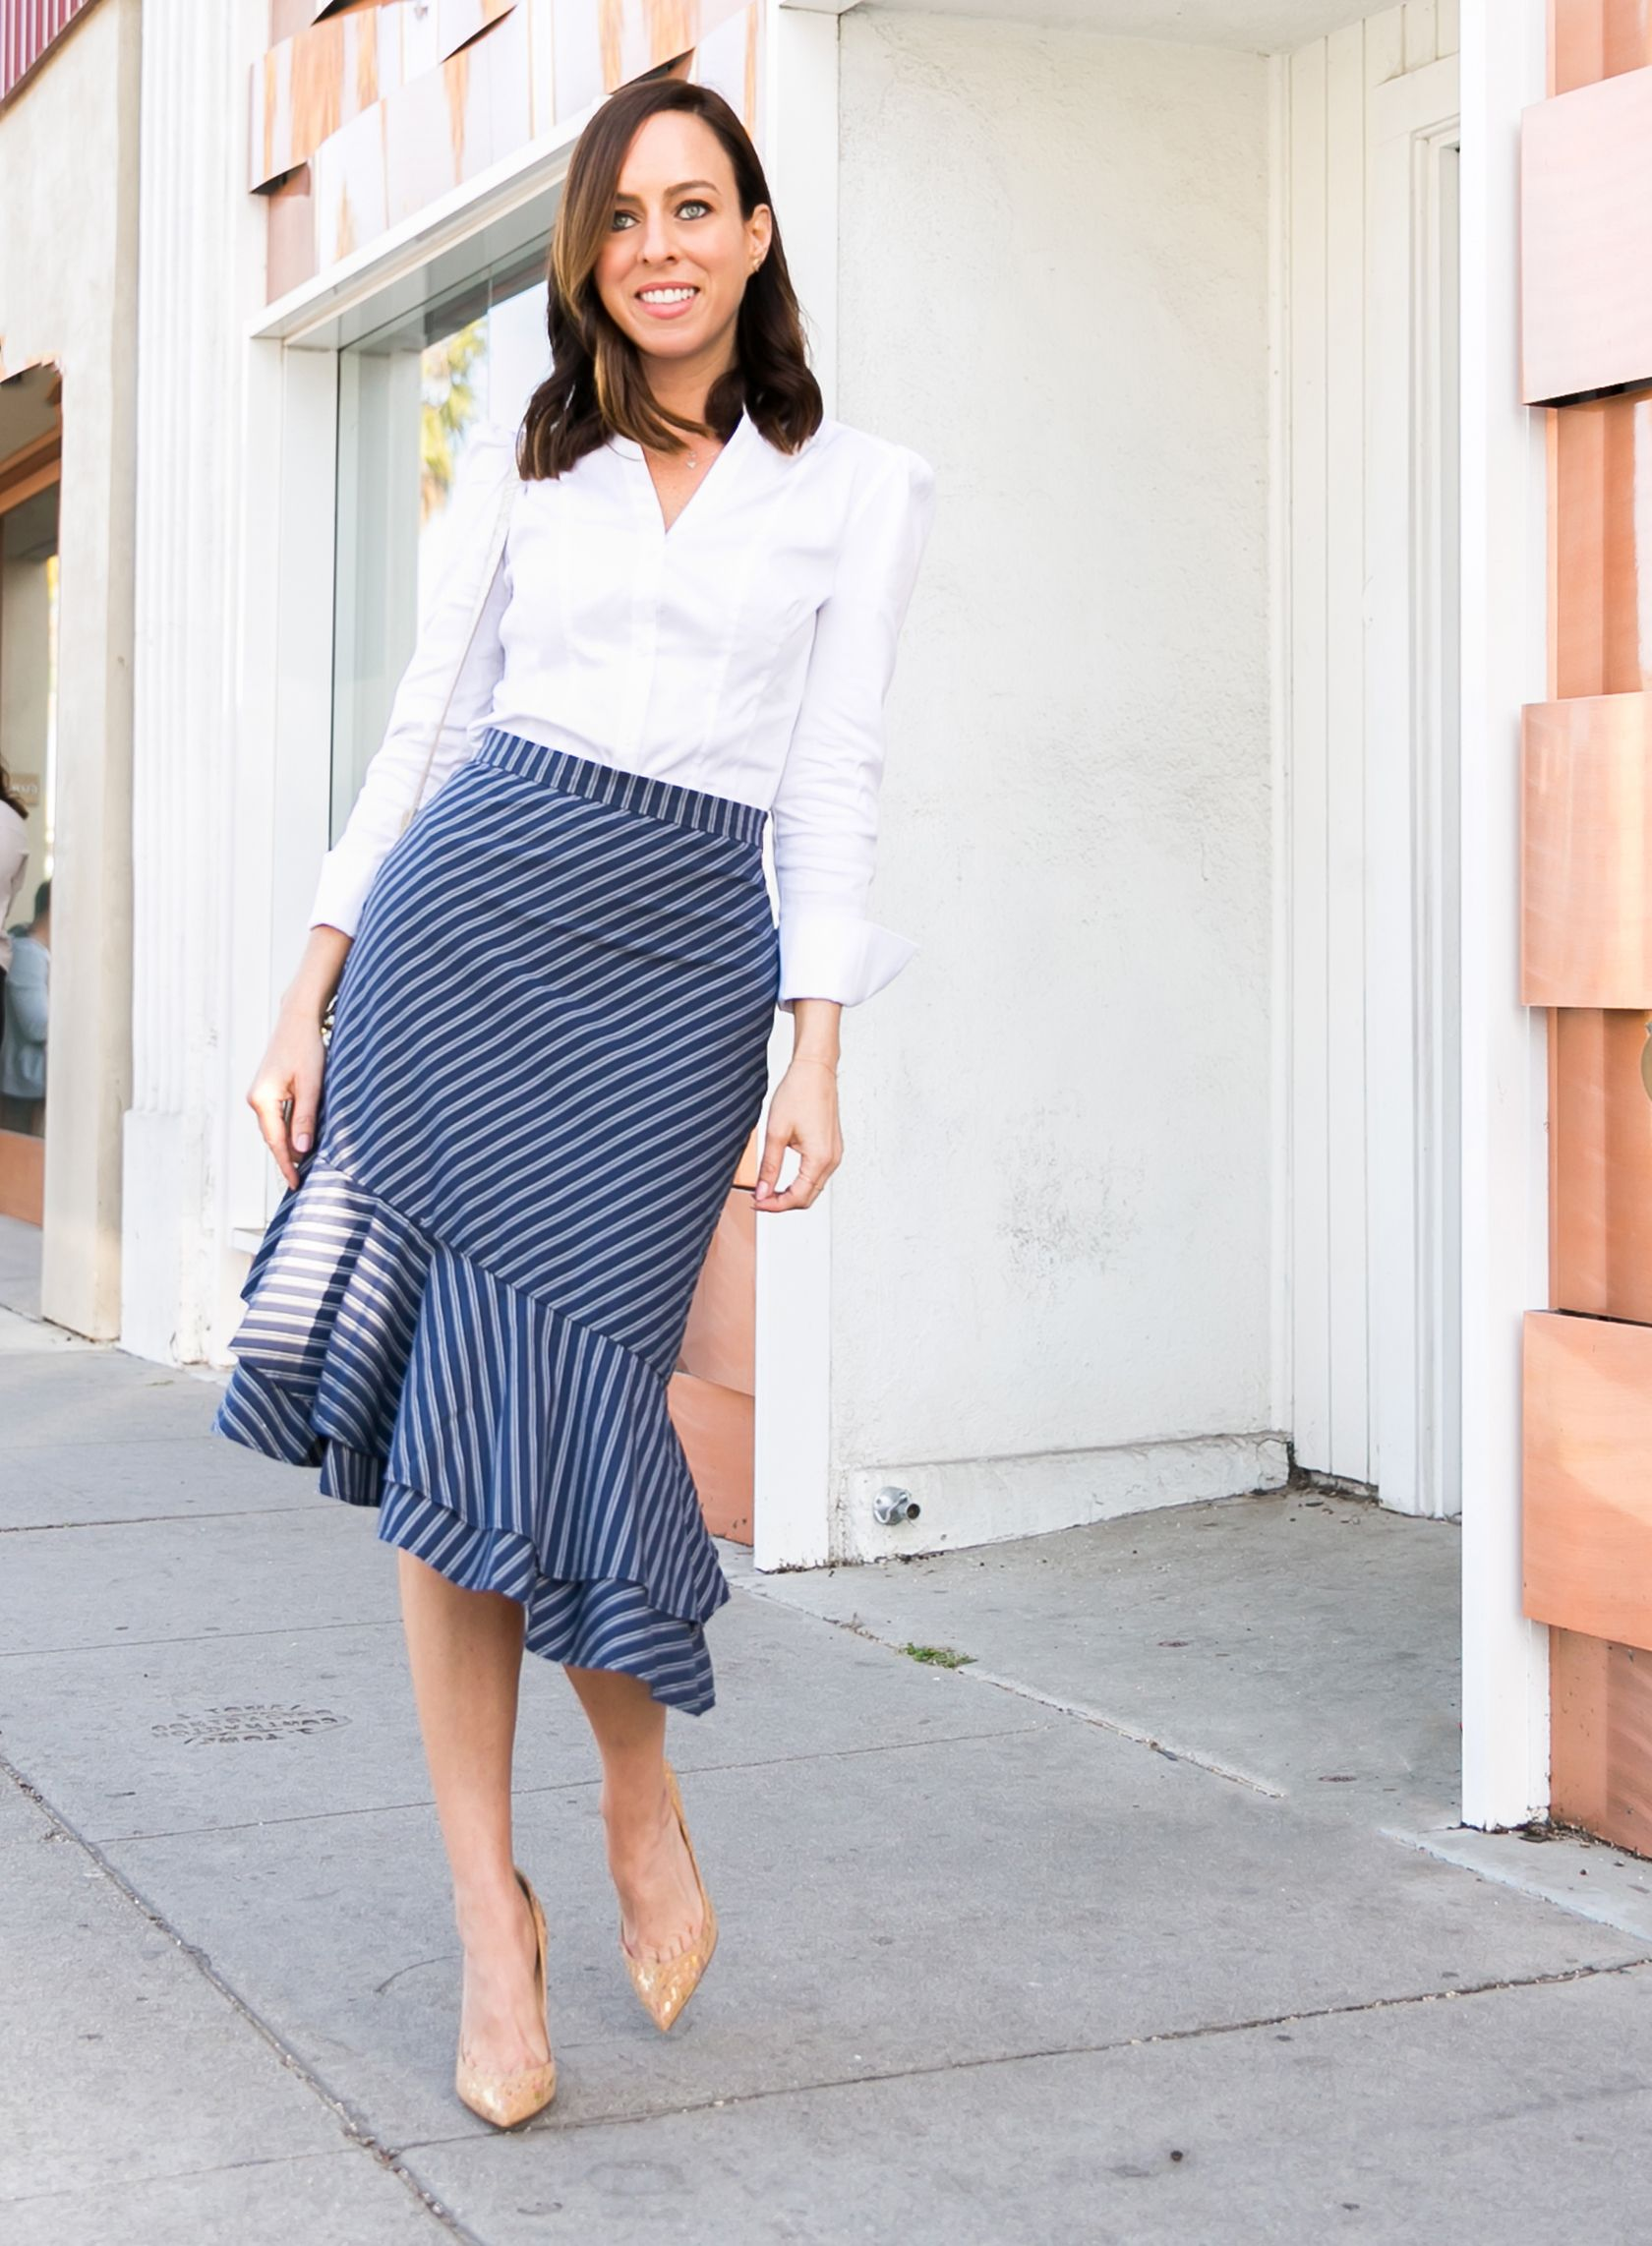 ee902f5487dc2 Sydne Style shows office outfit ideas in white button down shirt and joie stripe  skirt #stripe #skirts #prints #ruffles #louboutin